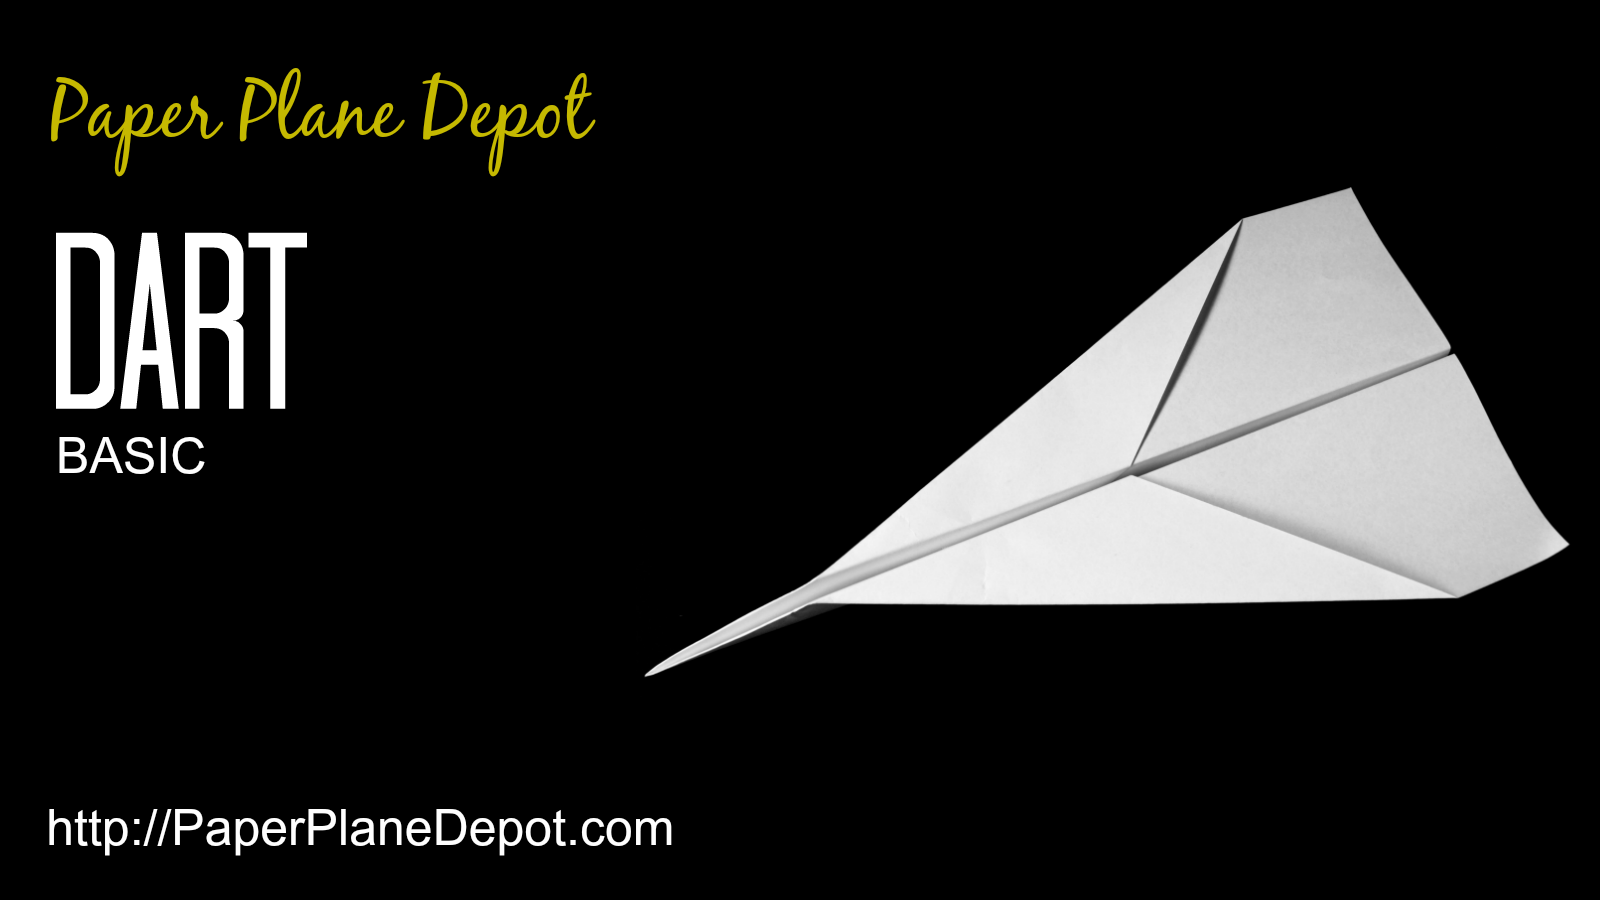 Plane instructions (basic) Dart